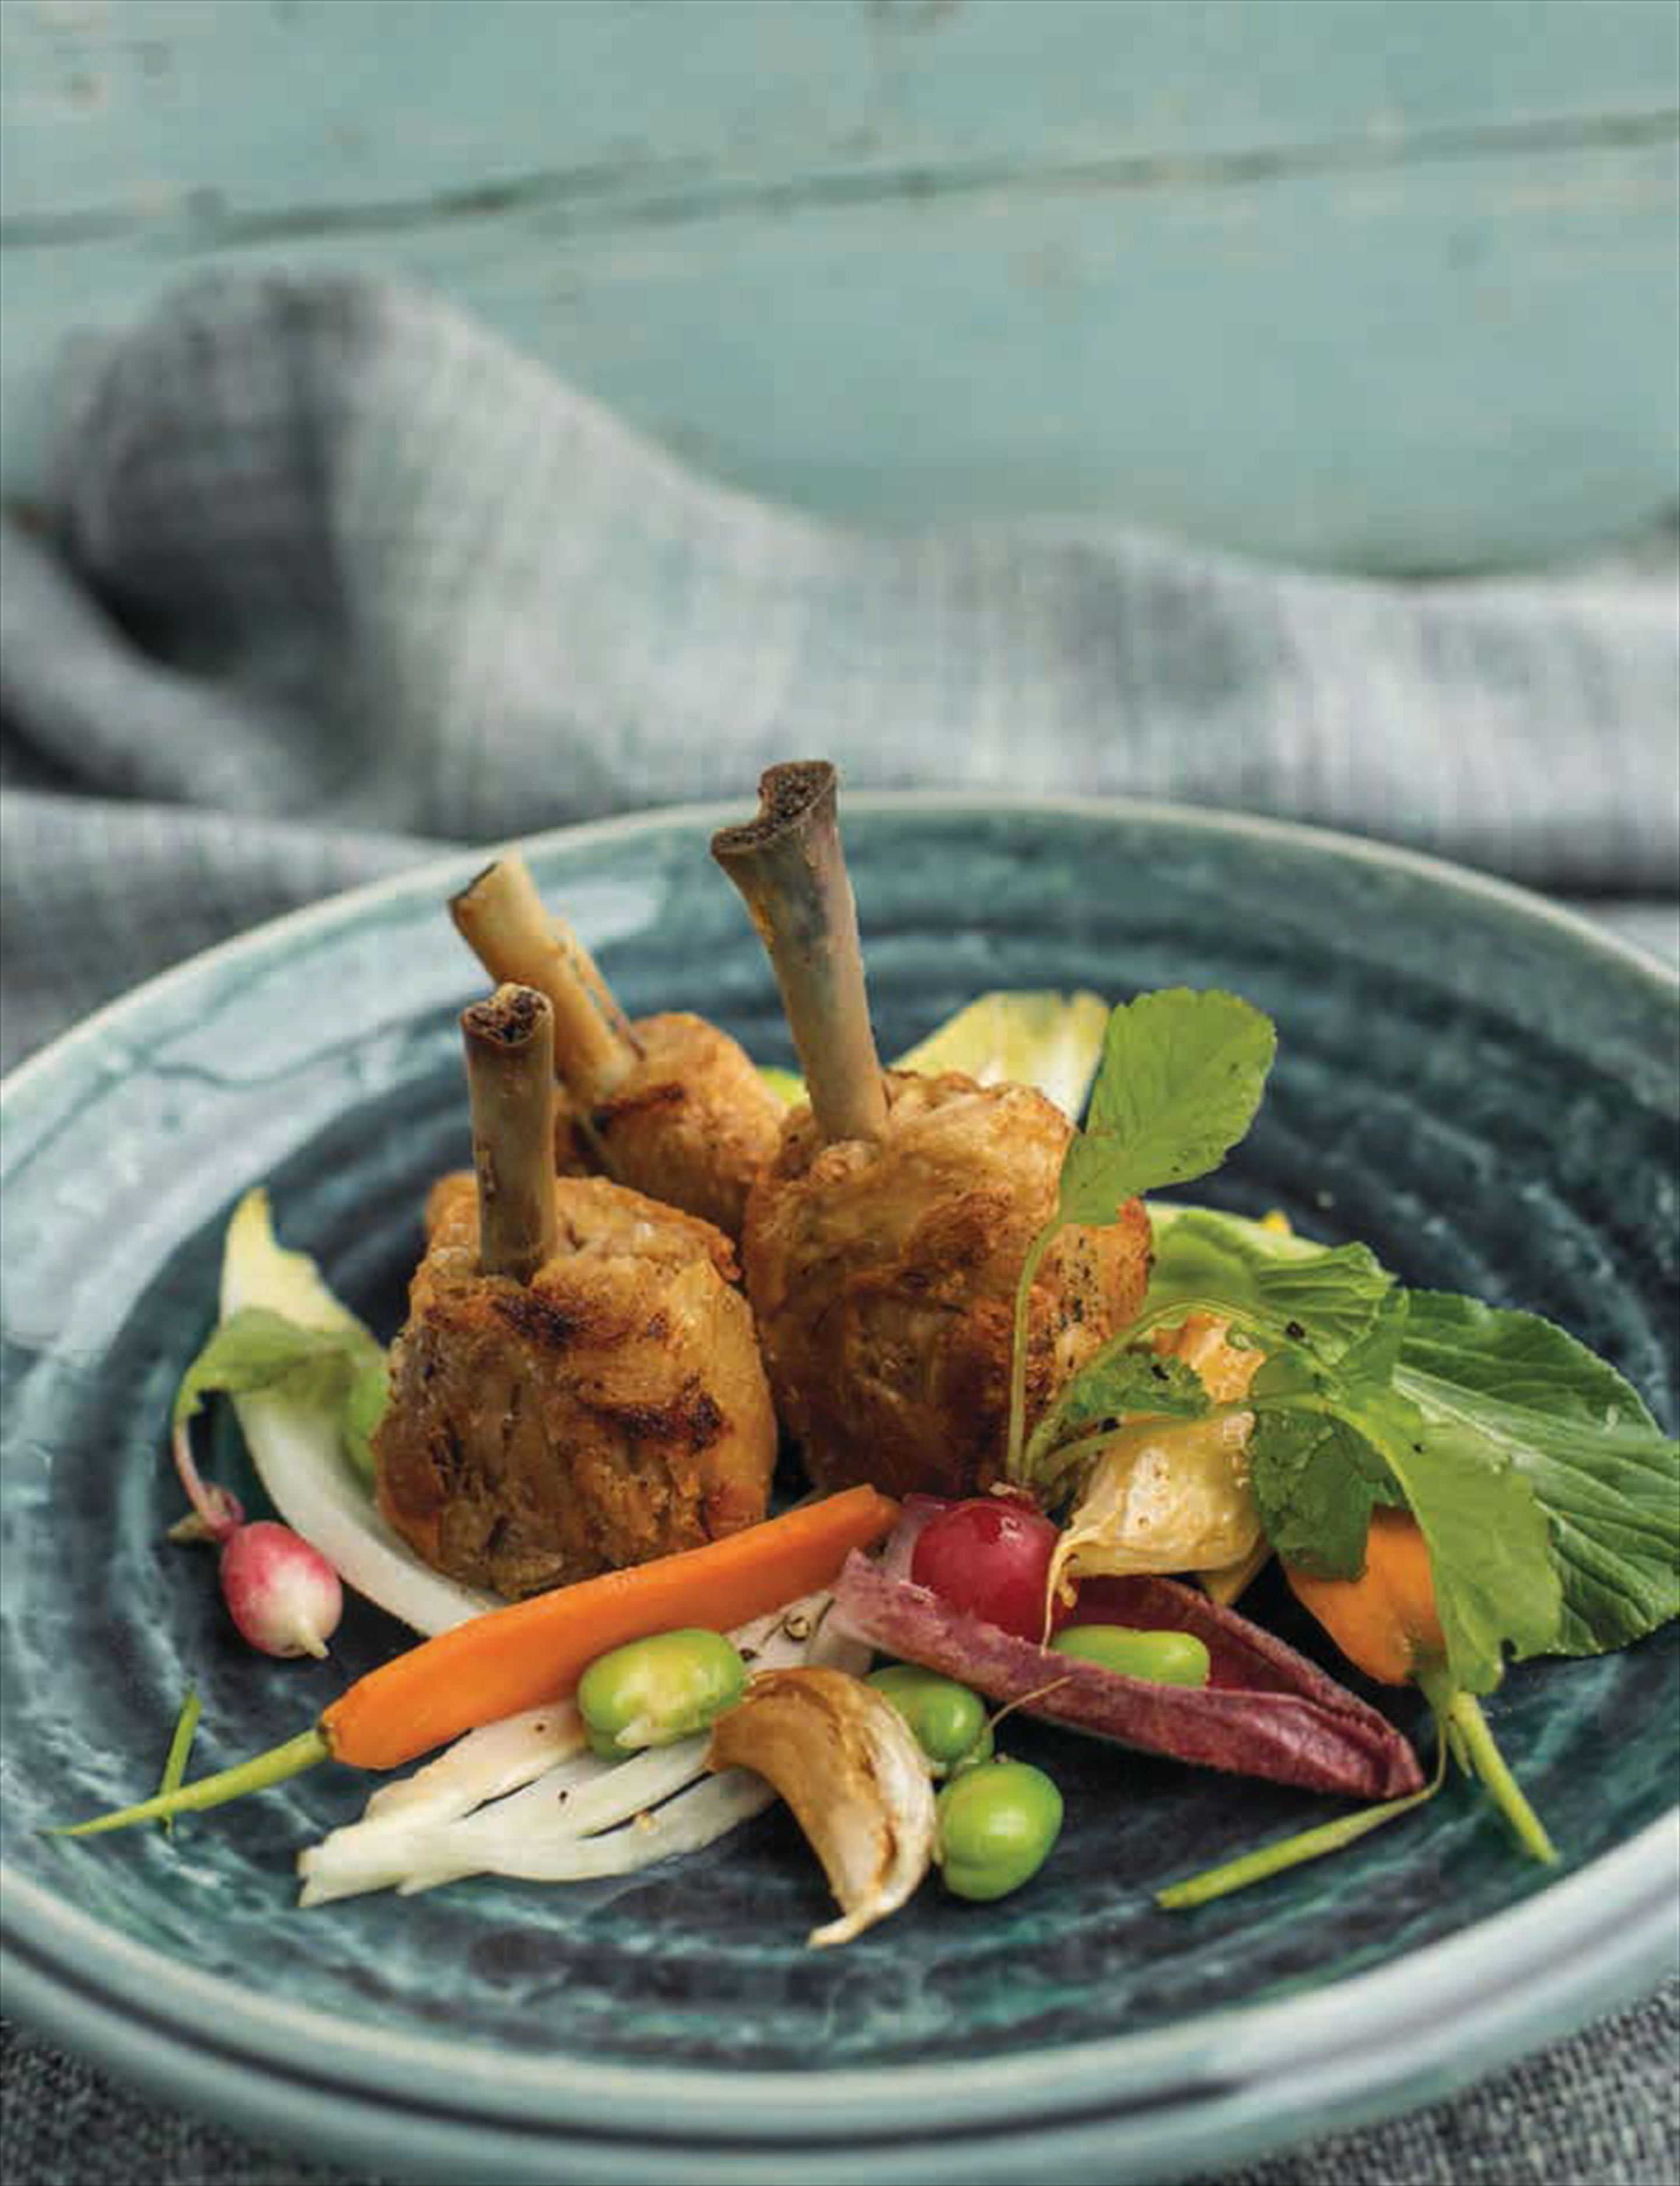 Chicken confit lollipops and garlic with raw vegetable salad